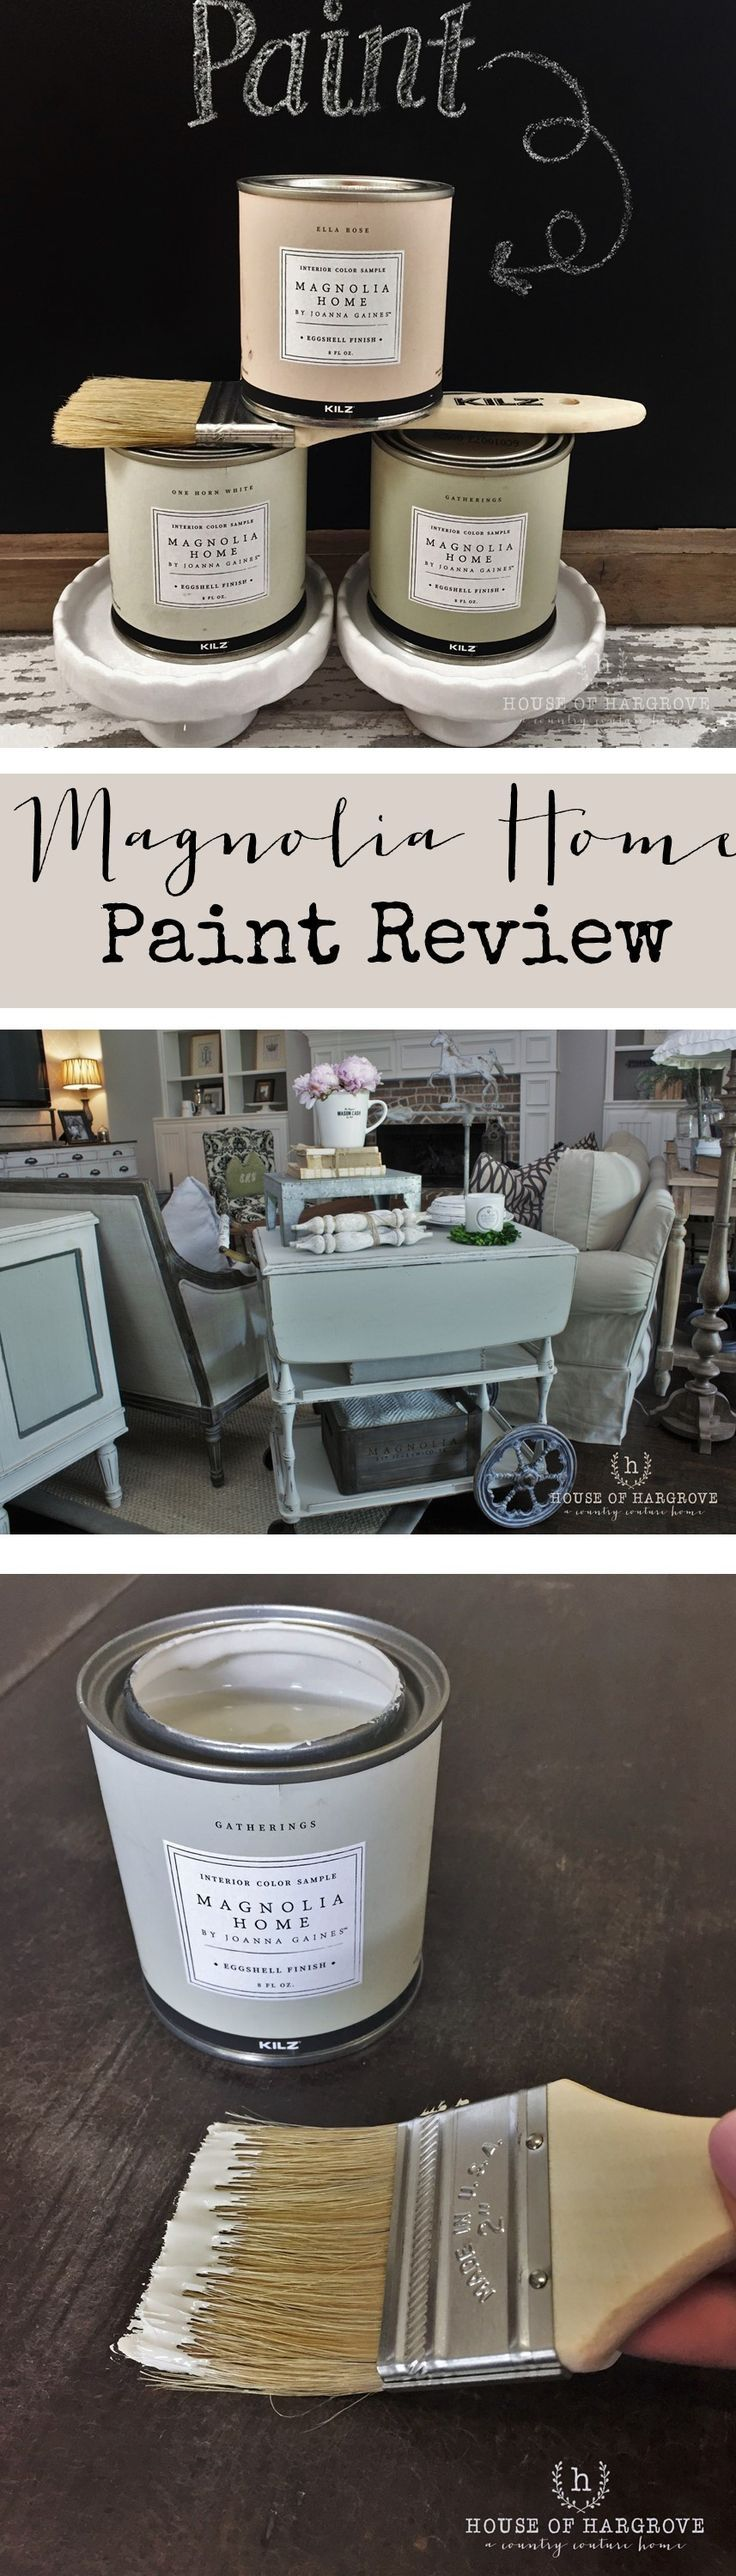 Magnolia Home Paint Review - Sharing my thoughts on the new Magnolia Home Paint line by Joanna Gaines. I used it to make over an antique piece of furniture. If you have been interested in trying it read my full review. Fixer Upper Fans...get a piece of Joanna in your own home.